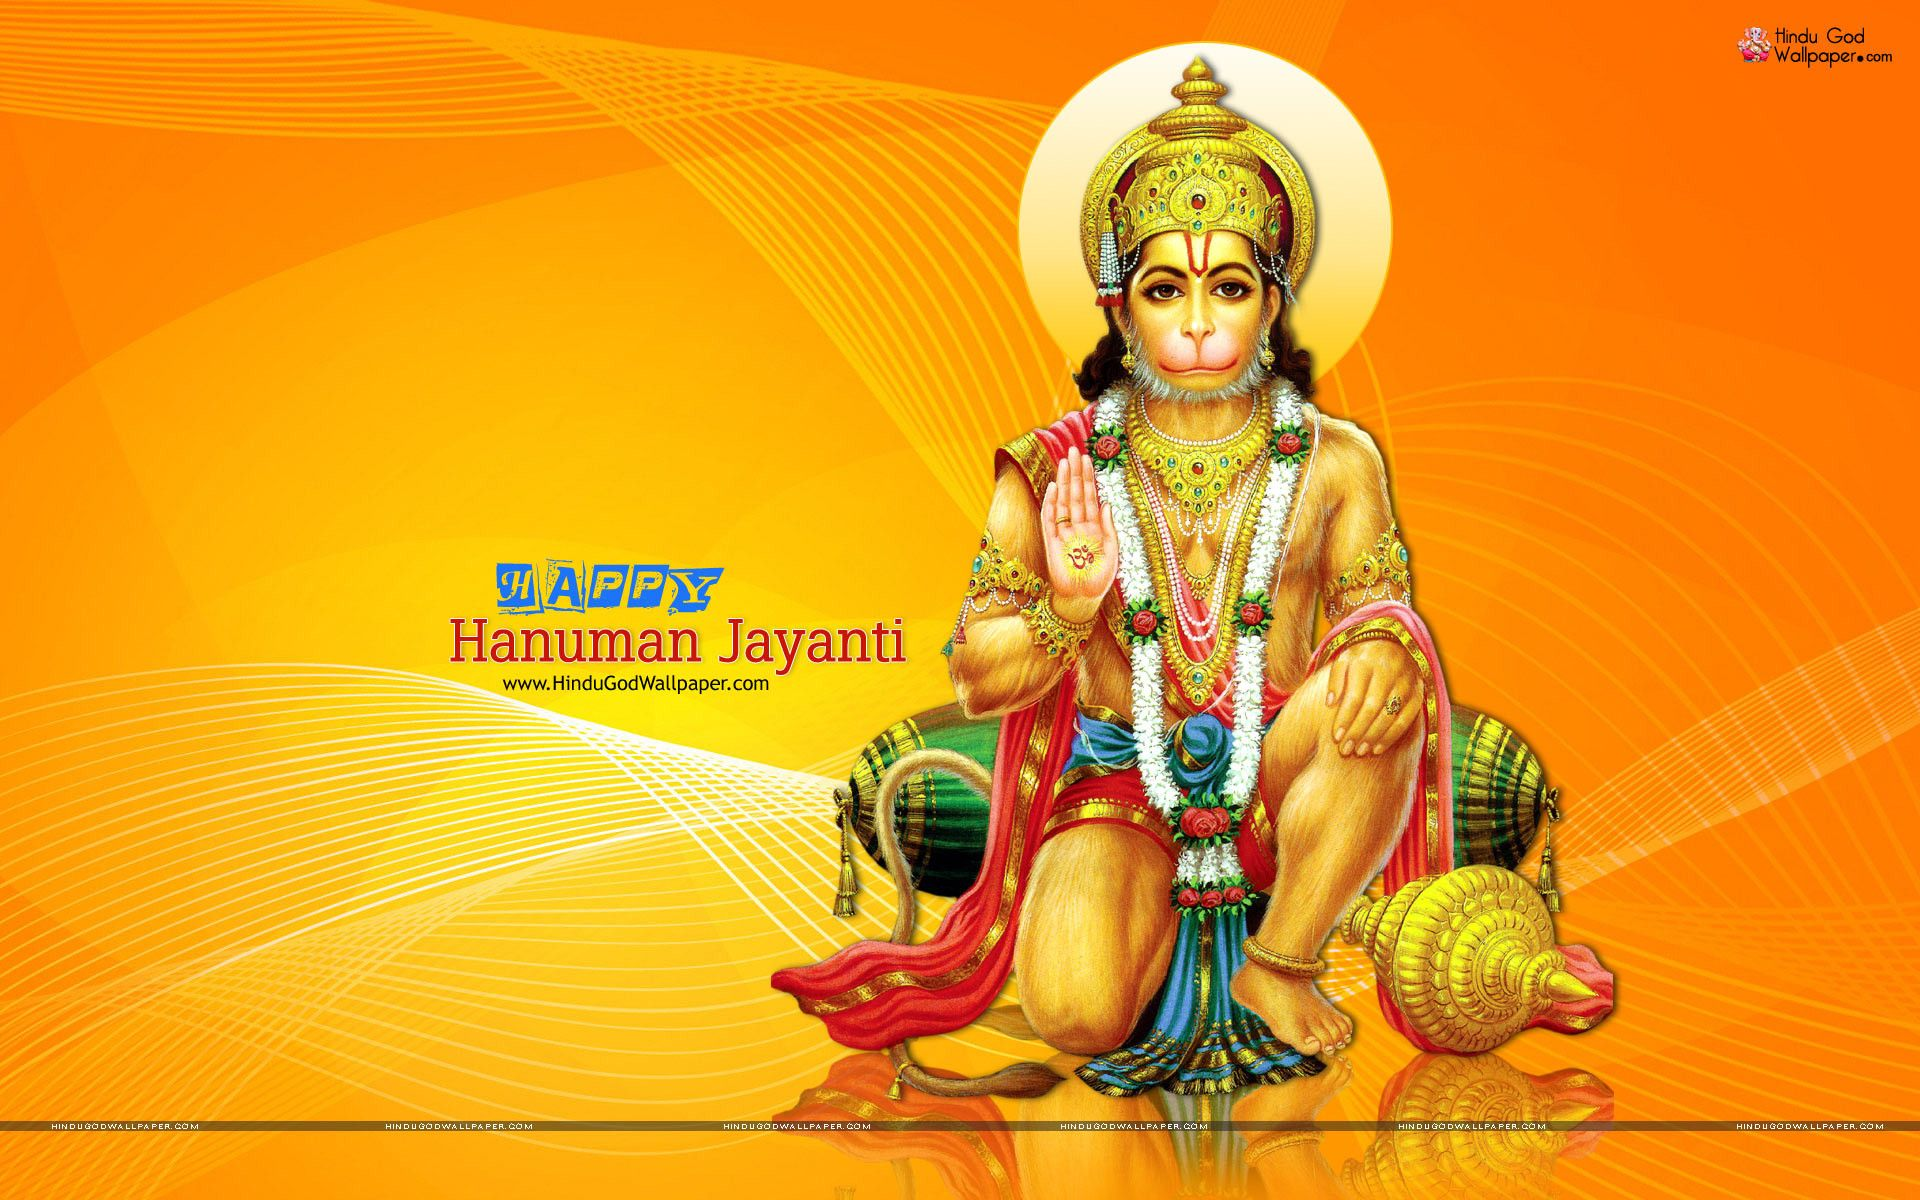 1920x1200 Hindu God Full Hd Wallpaper Hindu Gods Hd Wallpapers 1080p Hanuman Images Hd